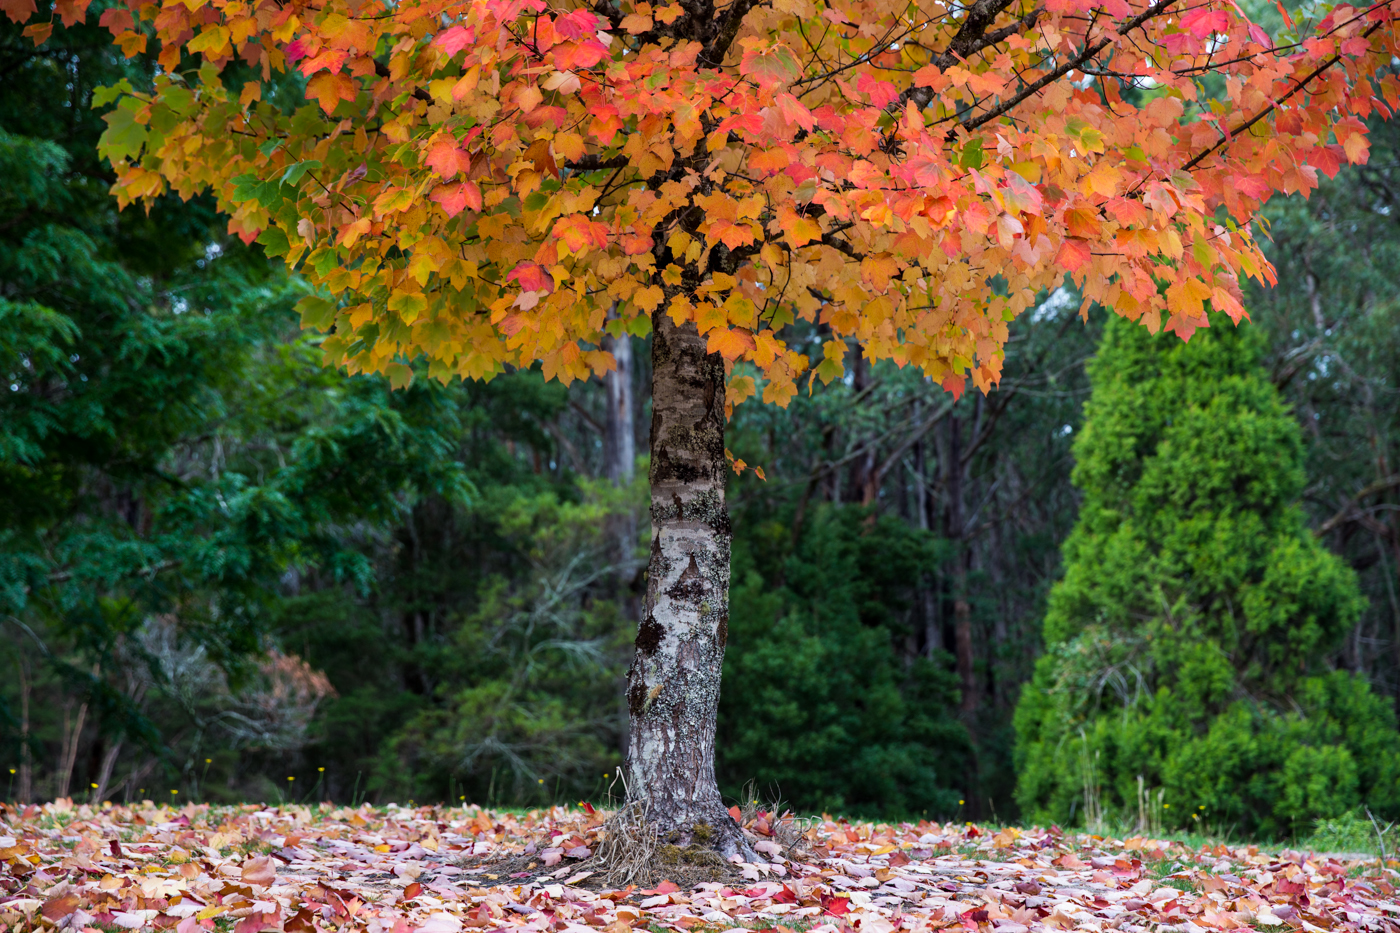 Autumn colours are a lovely thing. A lone tree prepares for winter near Forrest, Victoria.